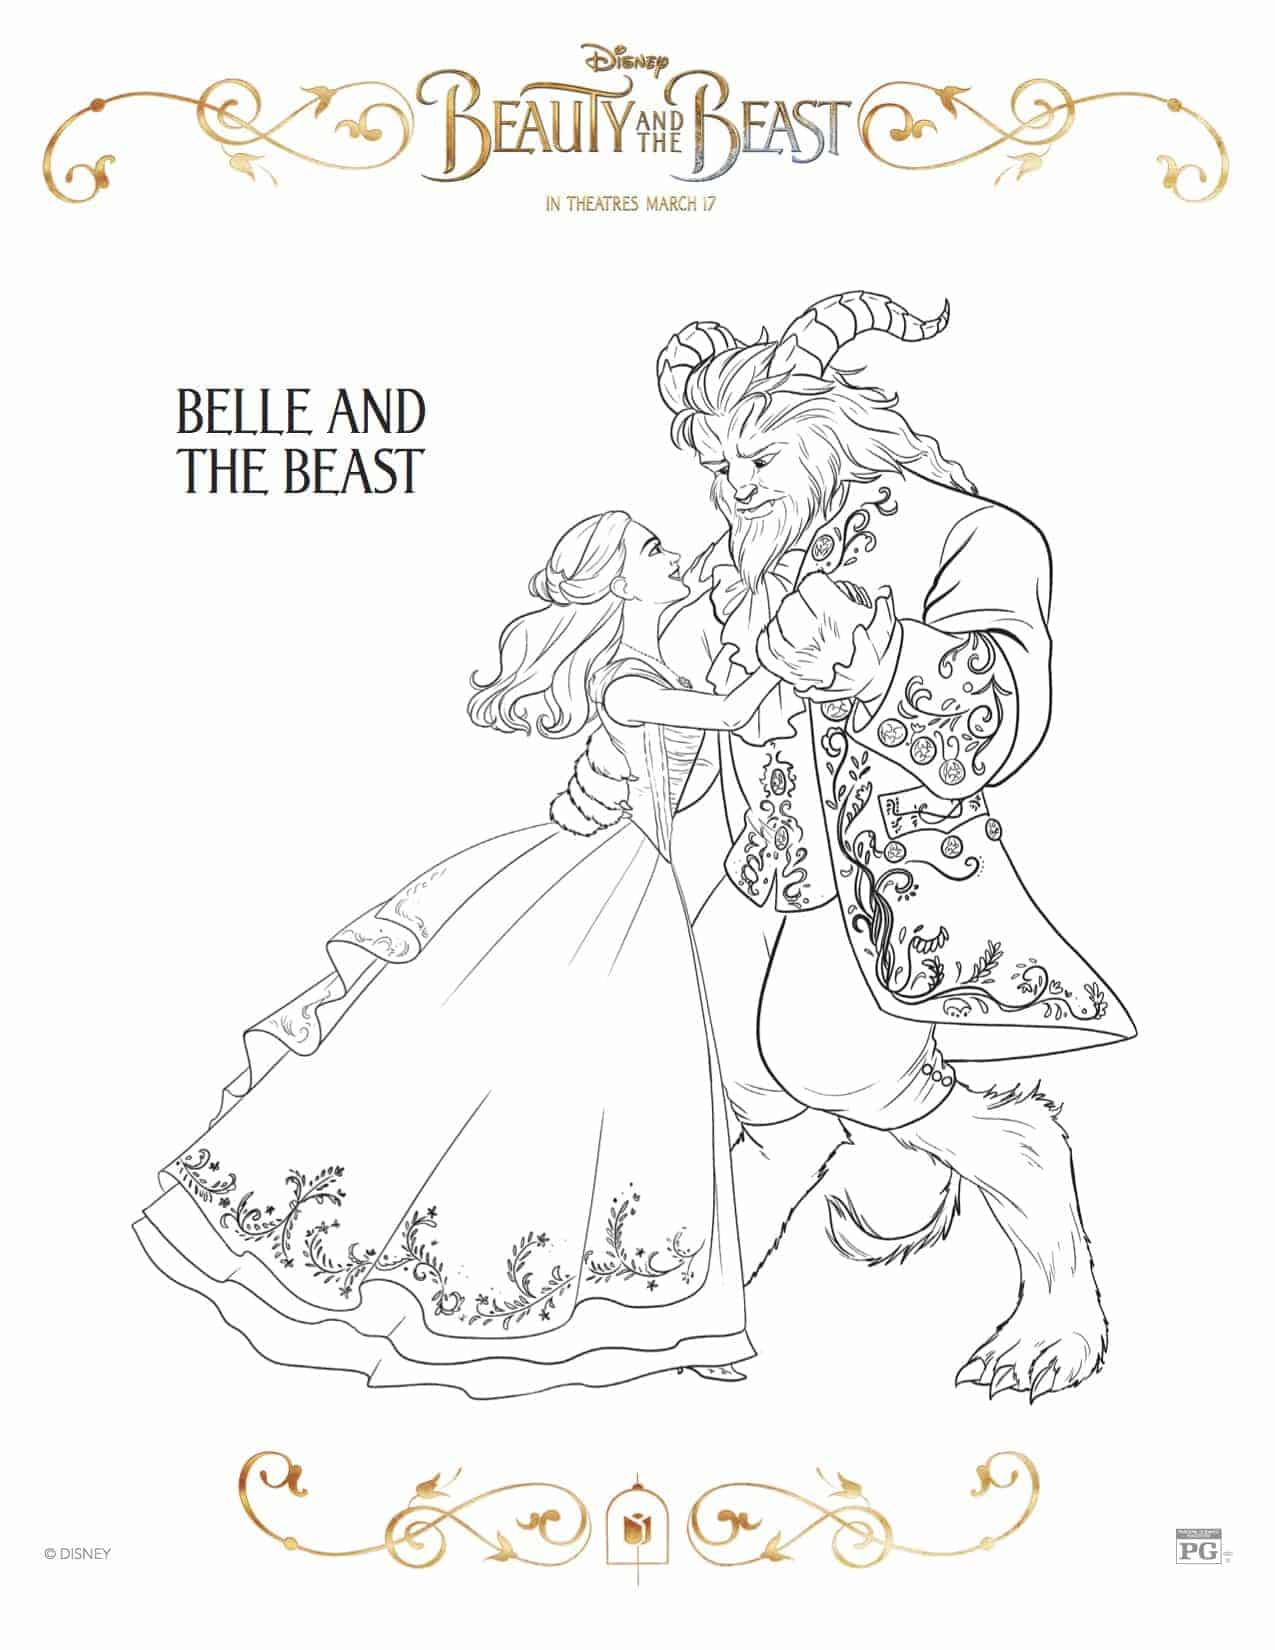 Printable Disney Mrs Potts and Chip Coloring Pages | 1650x1275